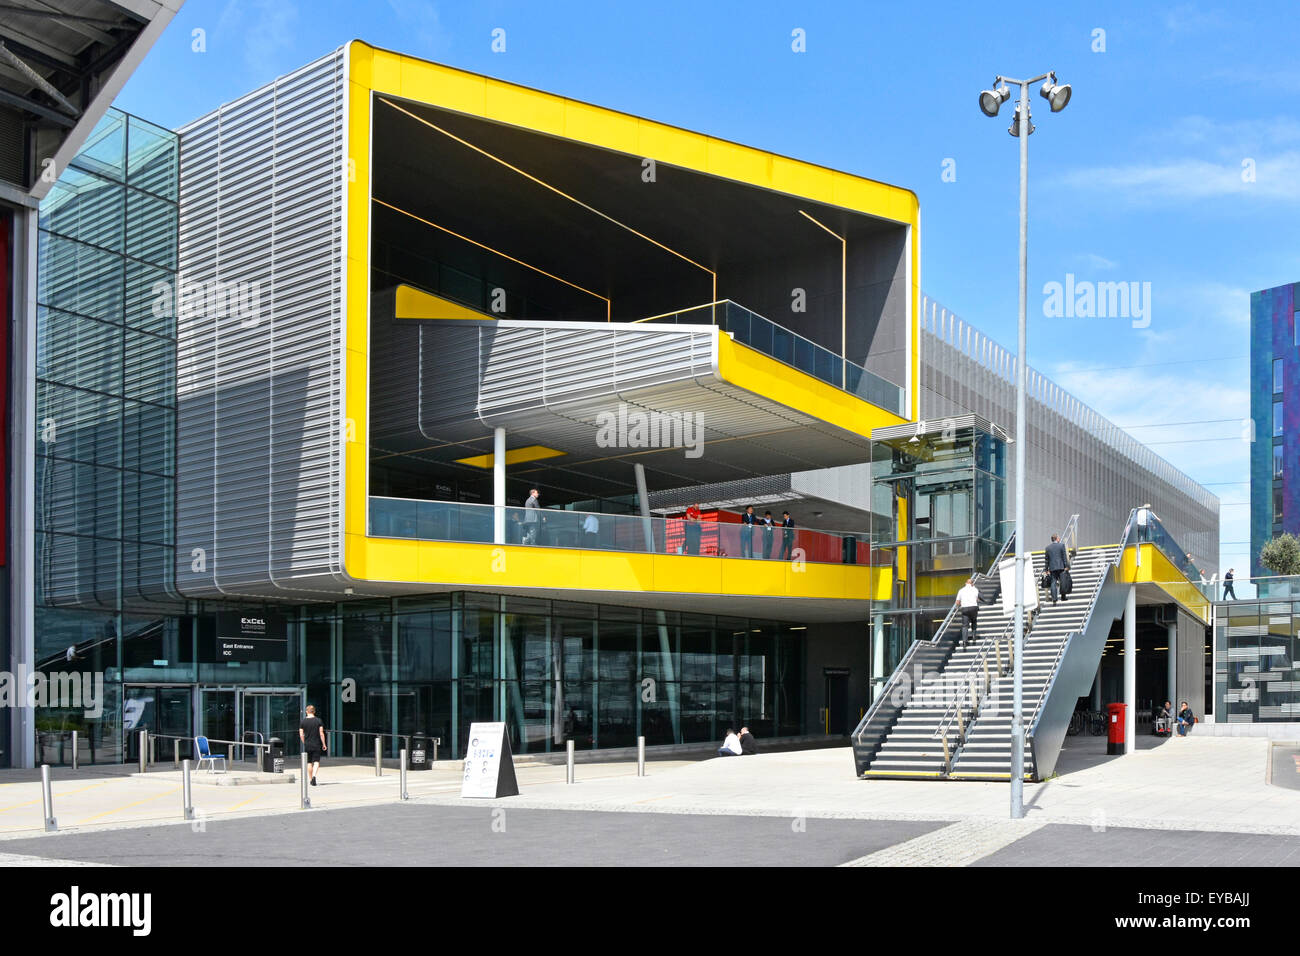 Exhibition Hall eastern public entrance areas to the London Excel exhibition complex & International Convention - Stock Image